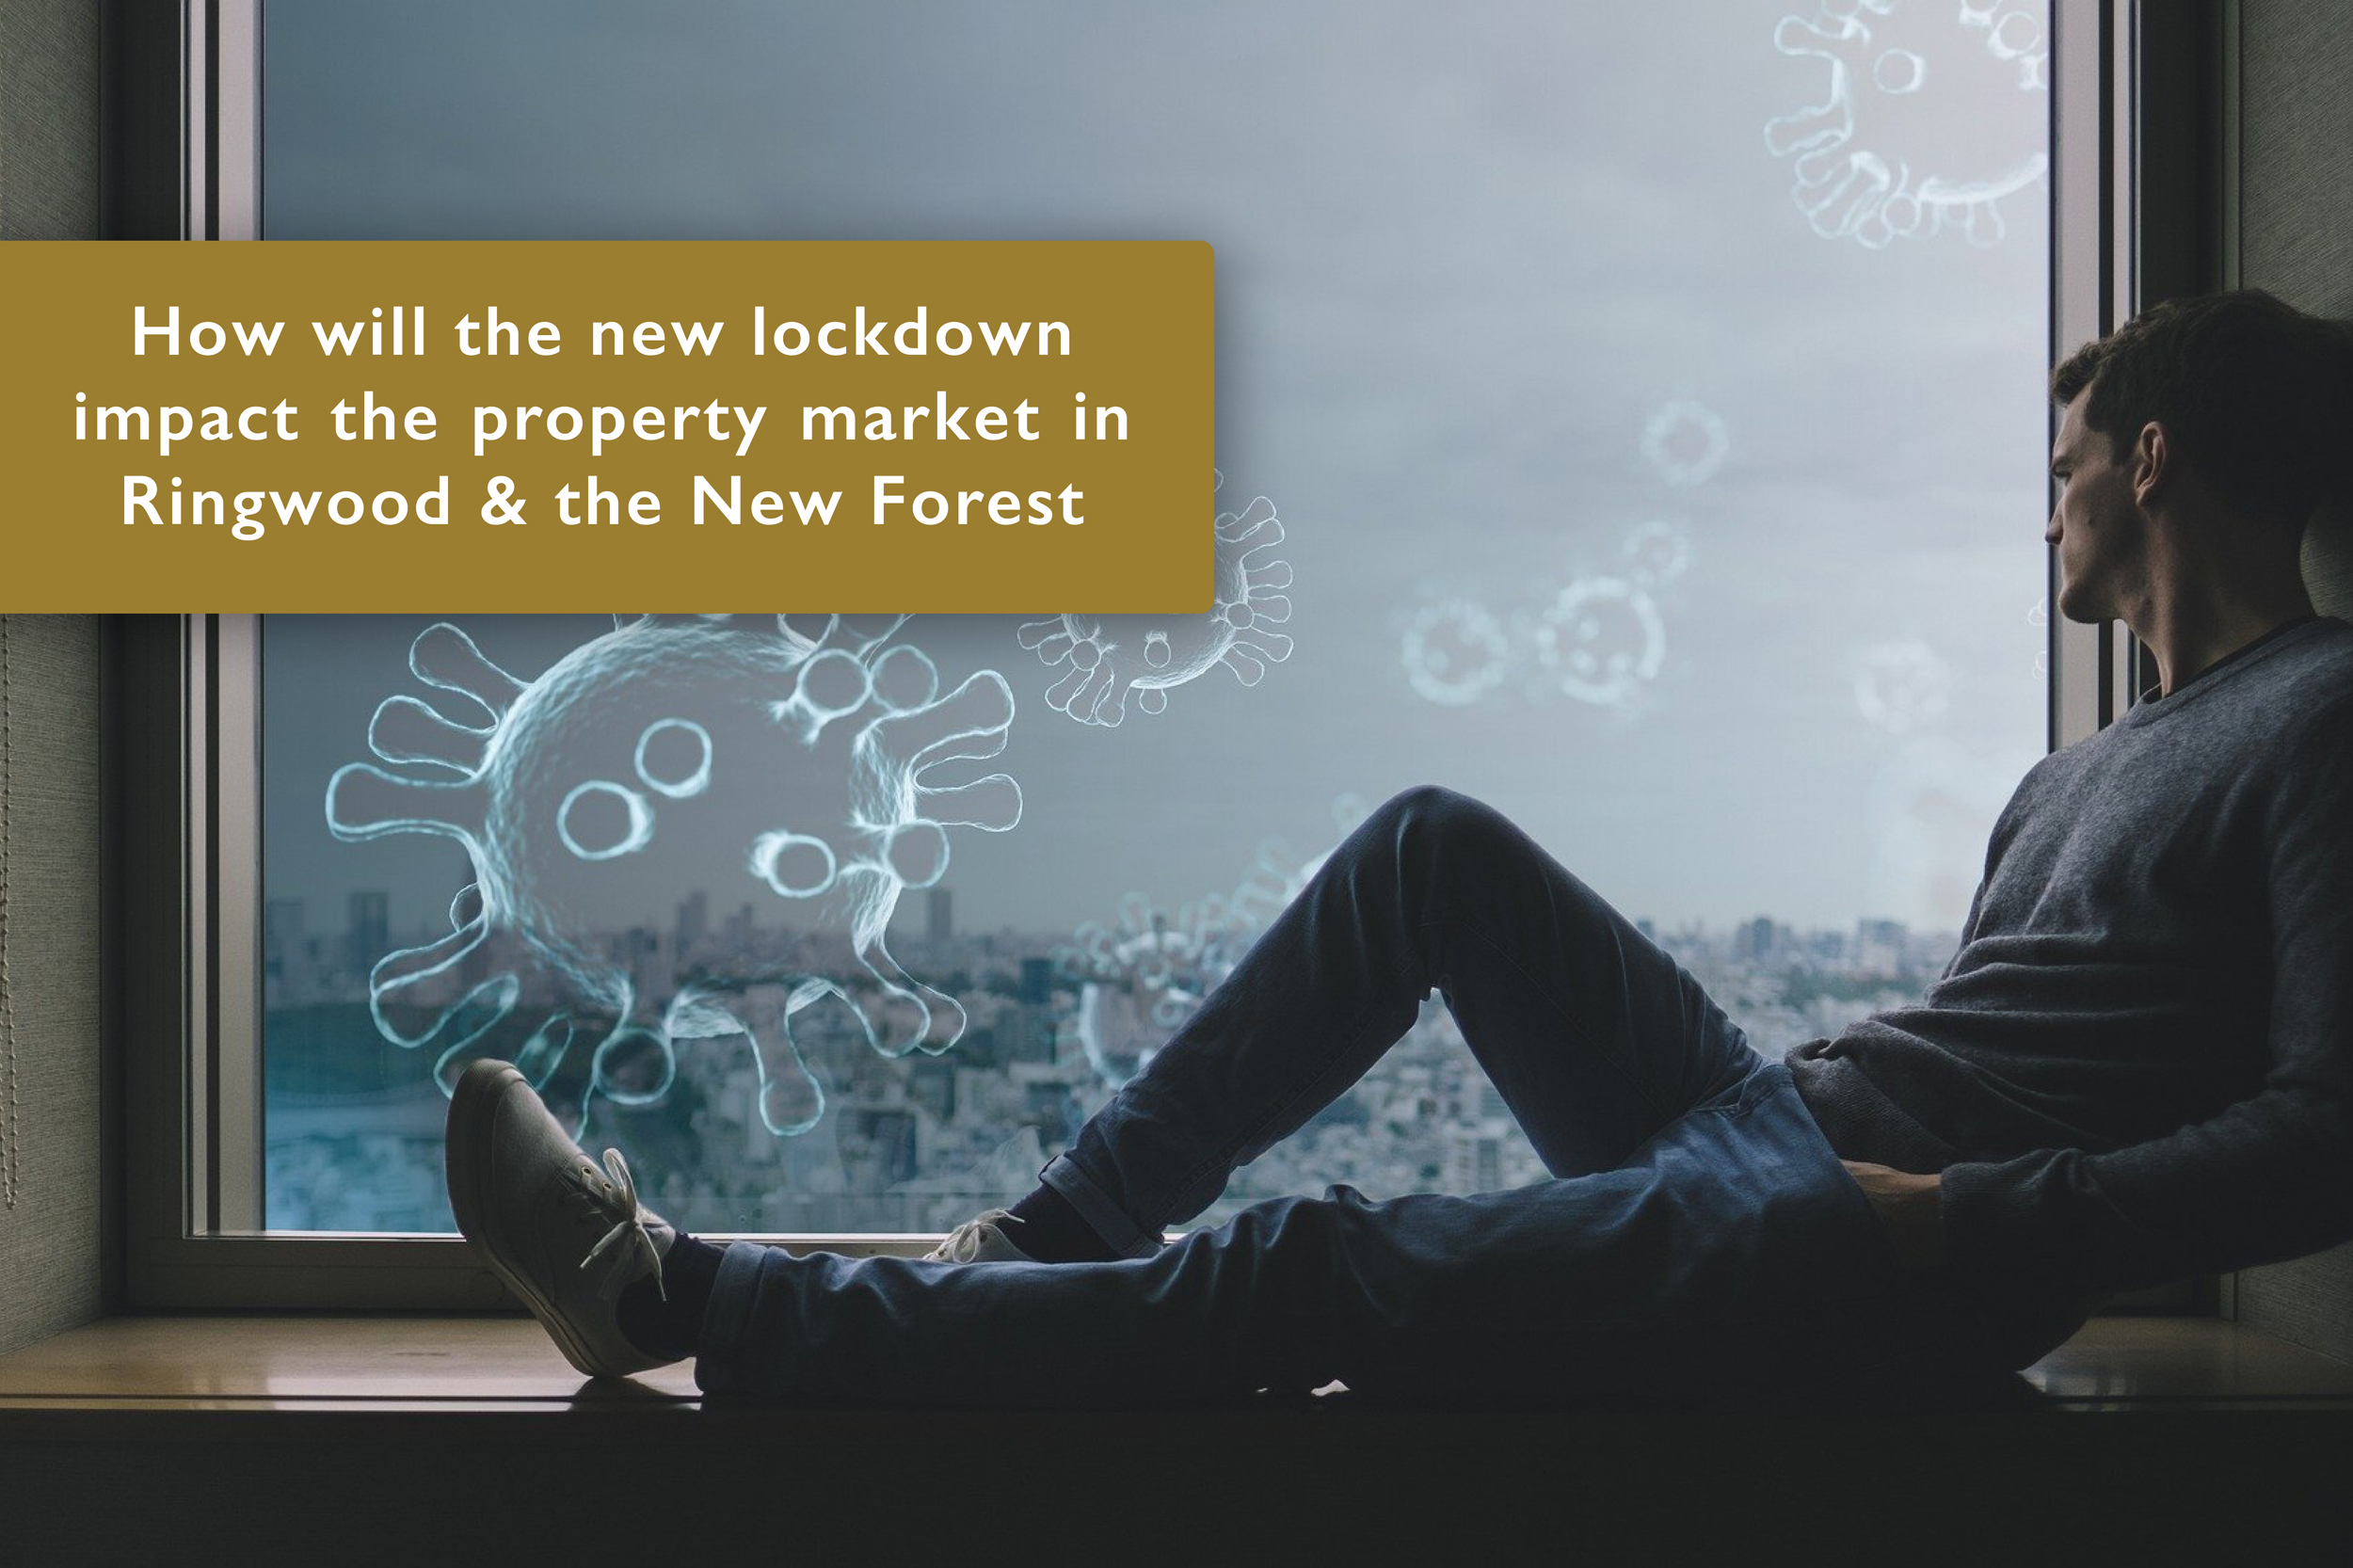 How will the new lockdown impact the property market in Ringwood & the New Forest